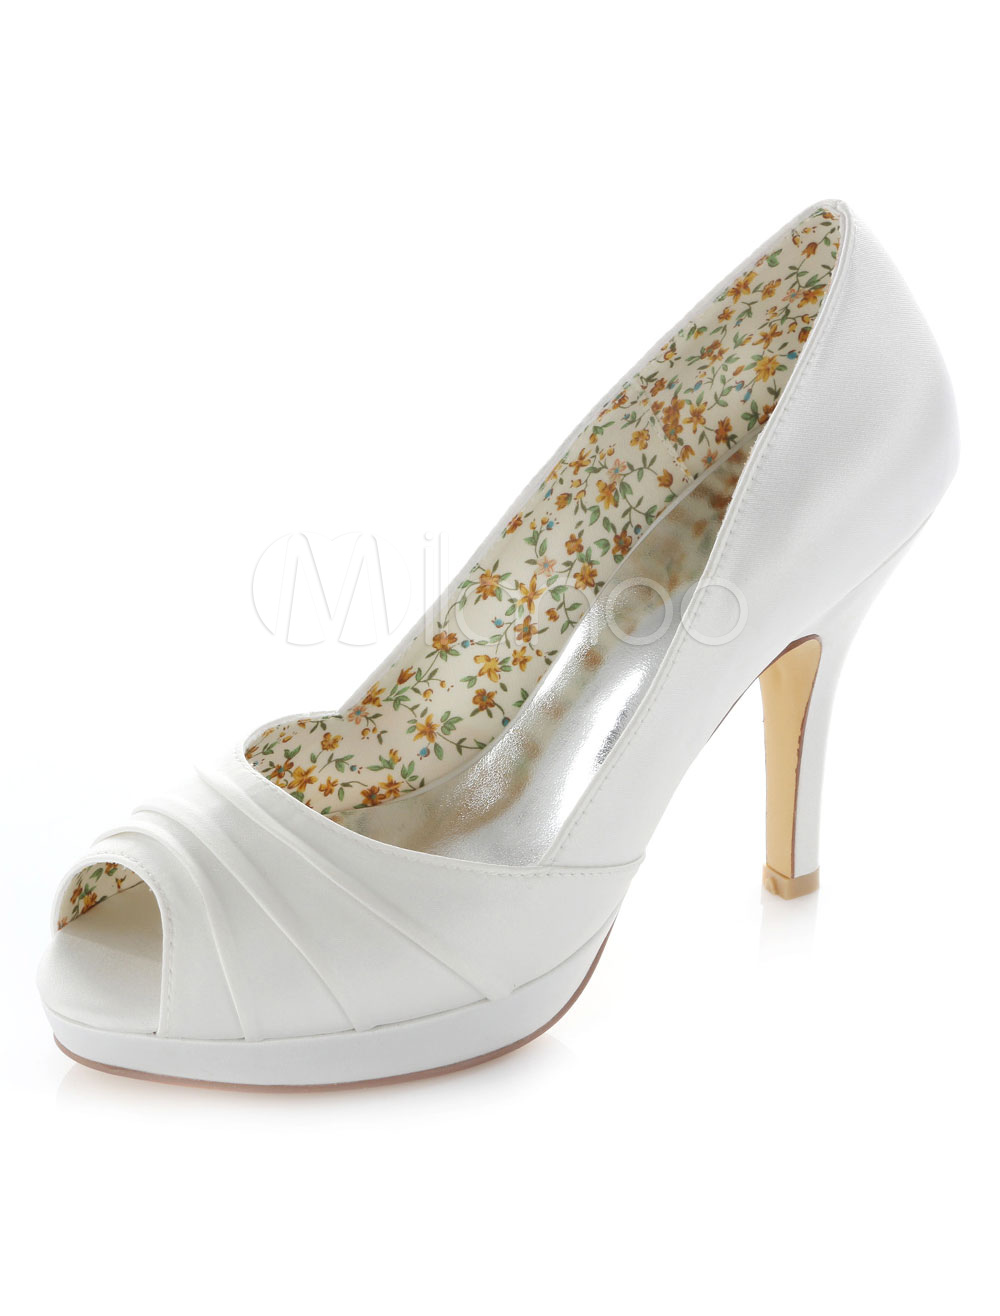 Buy White Ruched Peep Toe Satin Bridal Pumps for $55.09 in Milanoo store